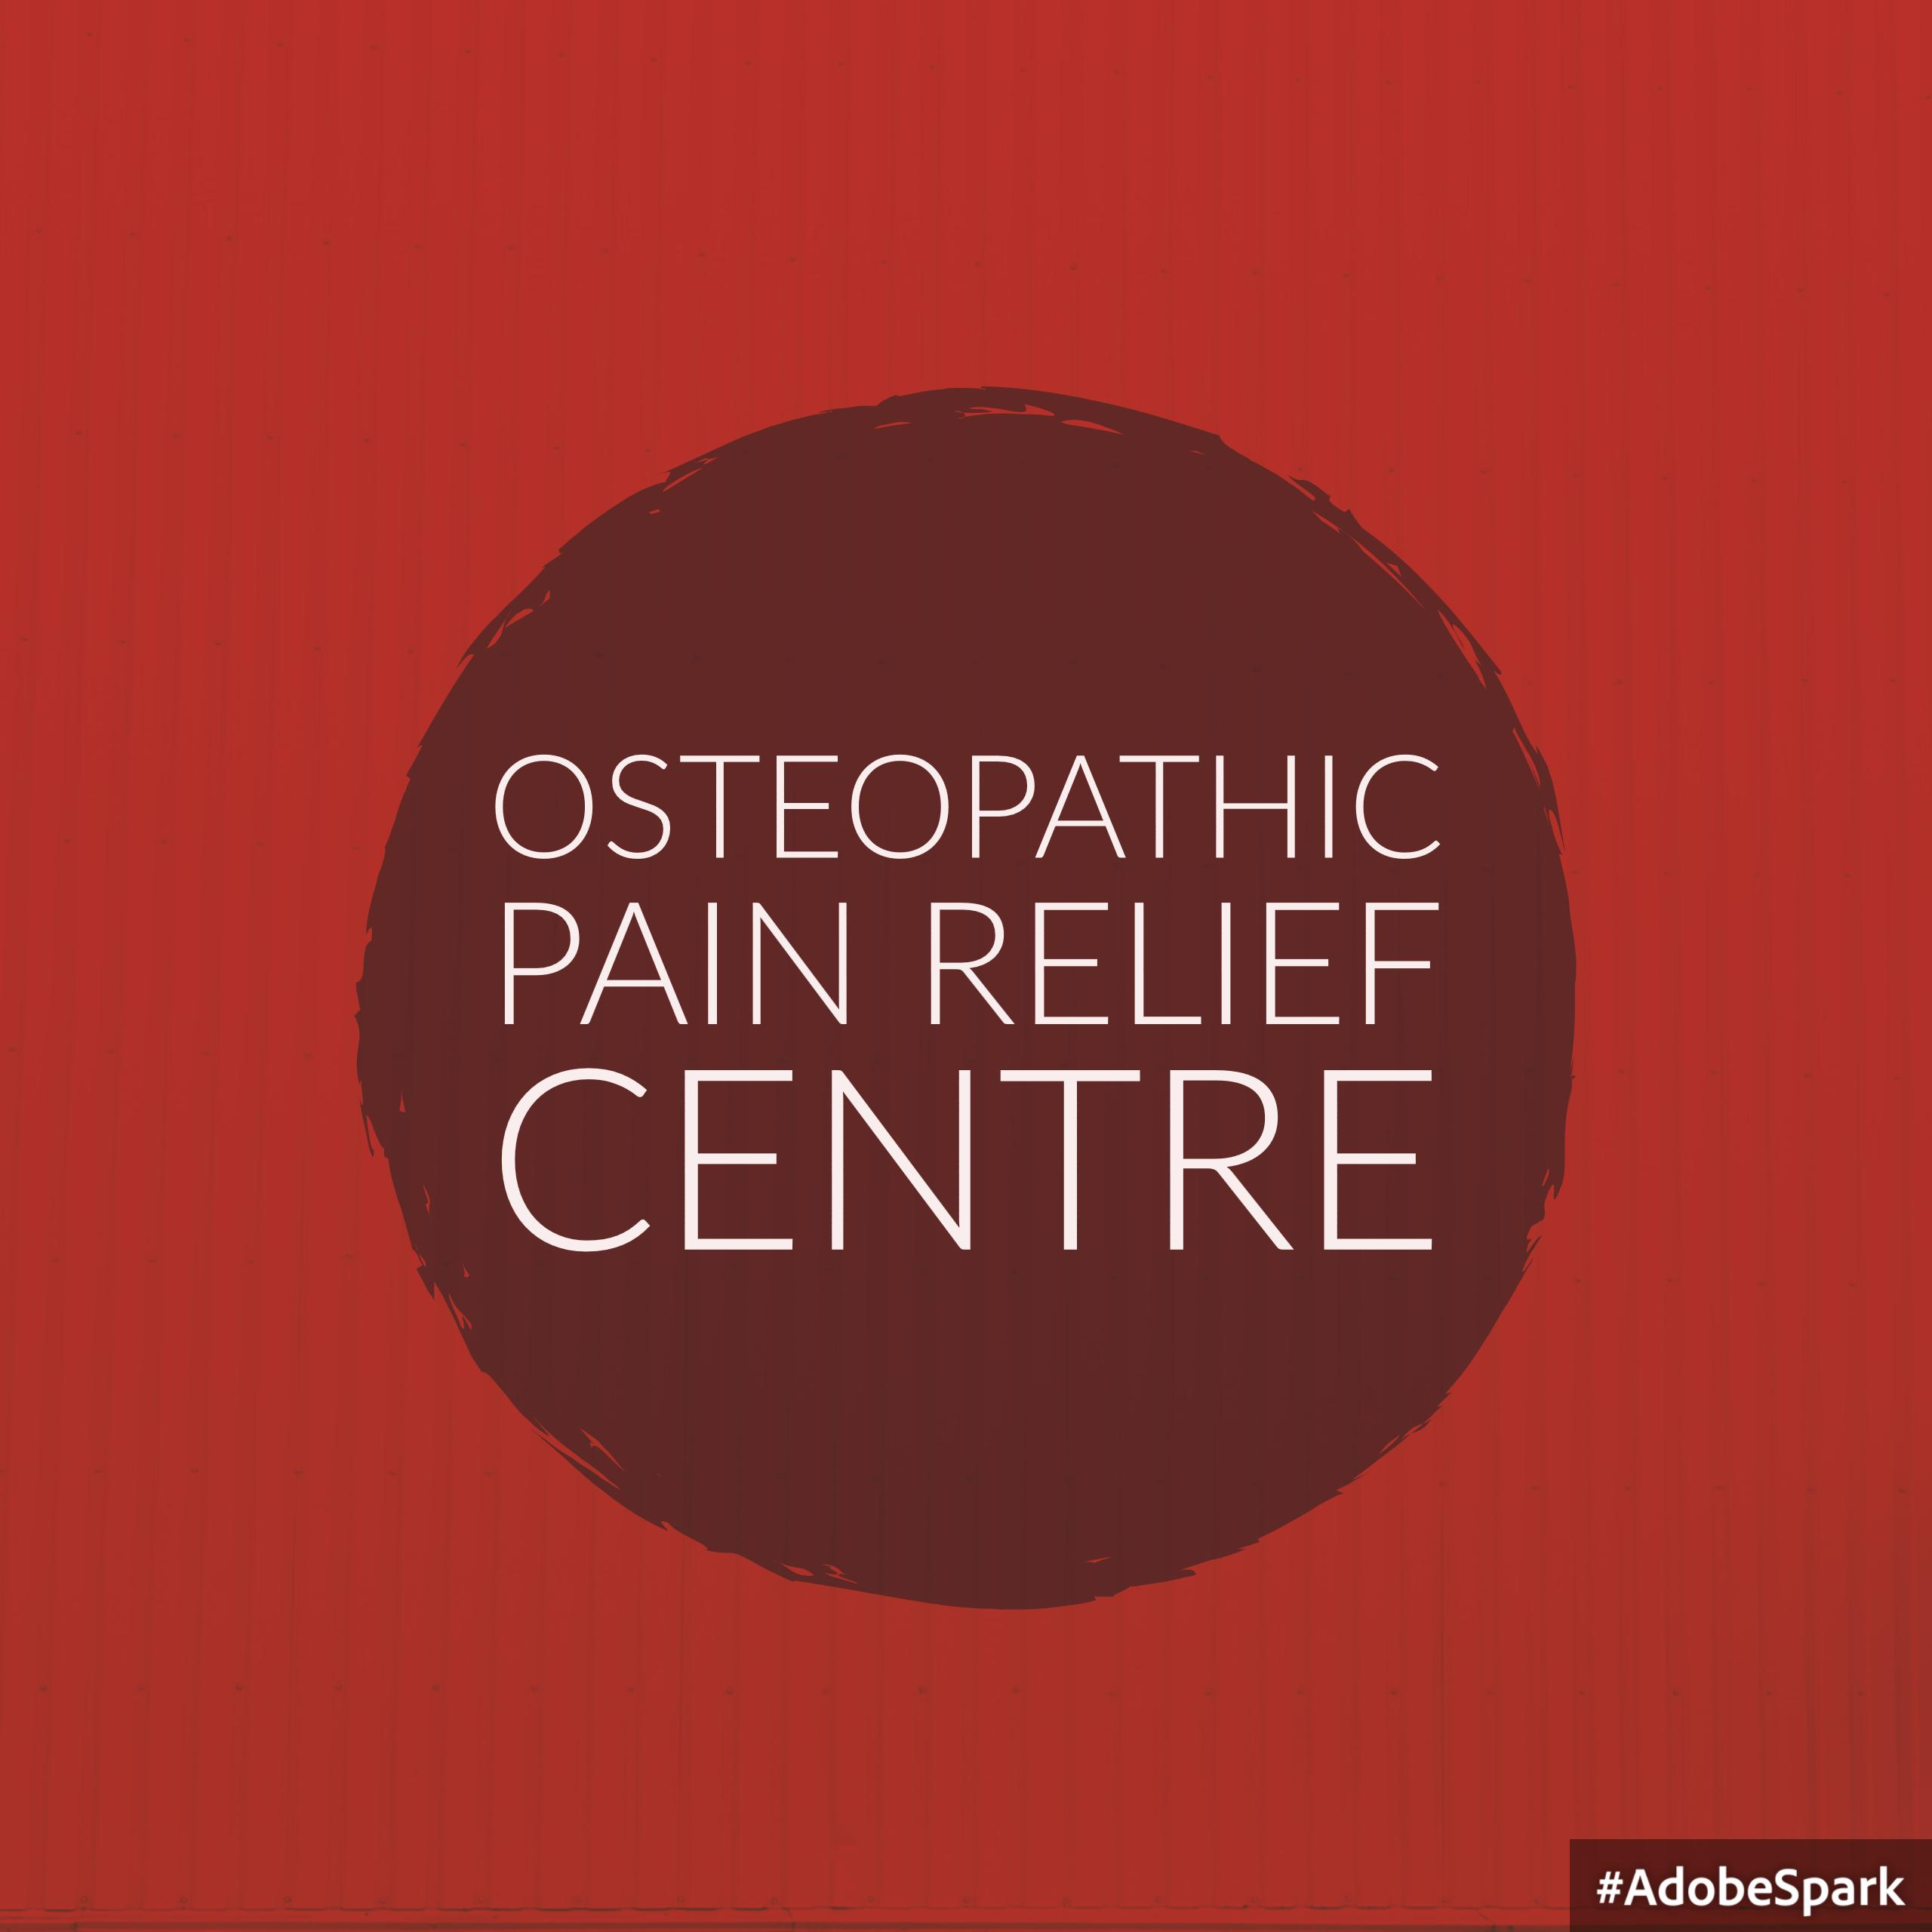 Osteopathic Pain Relief Centre